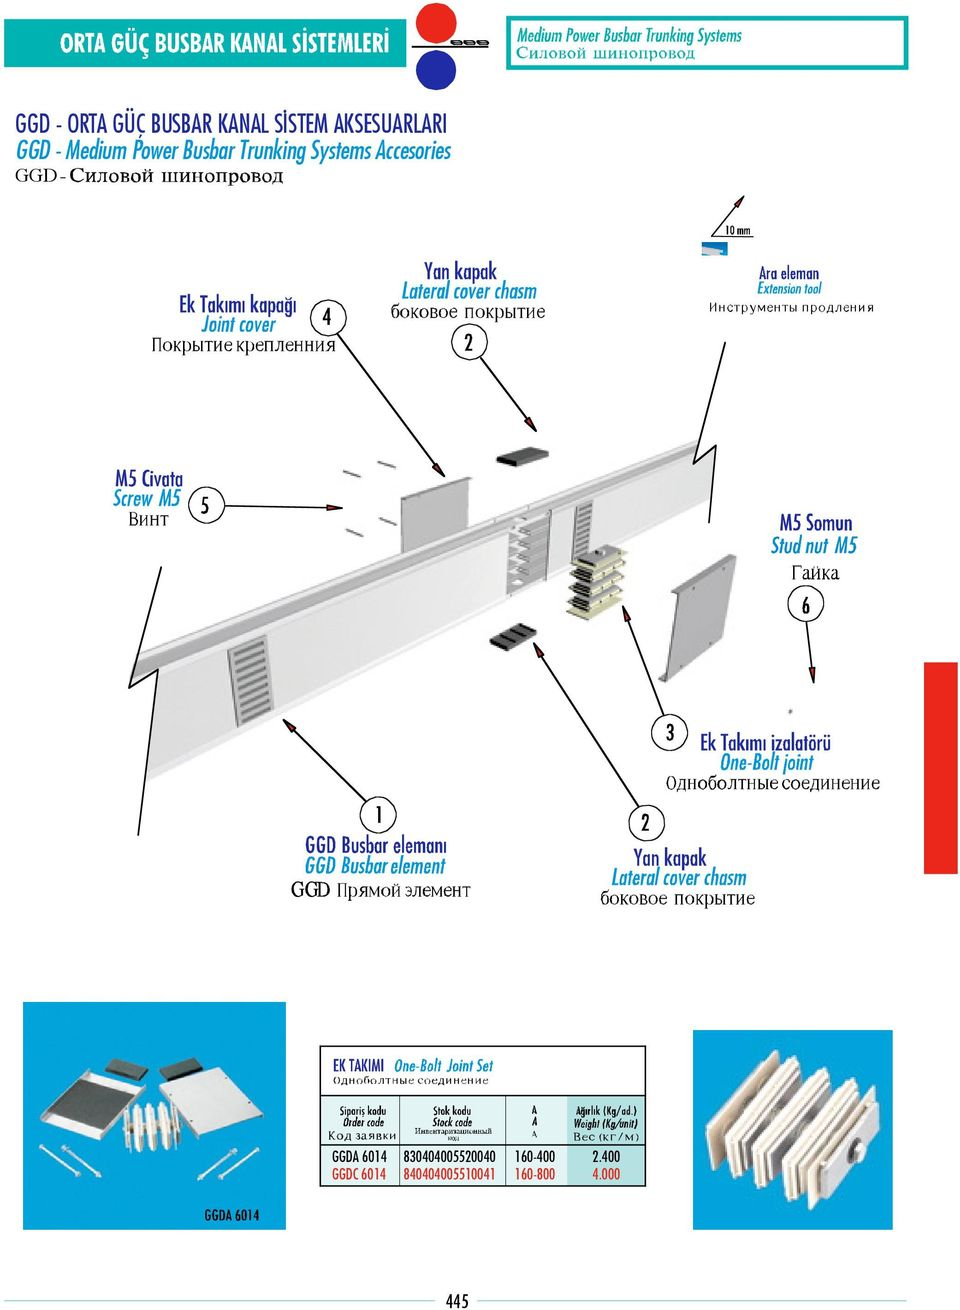 Trunking Systems Accesories A 6014 C 6014